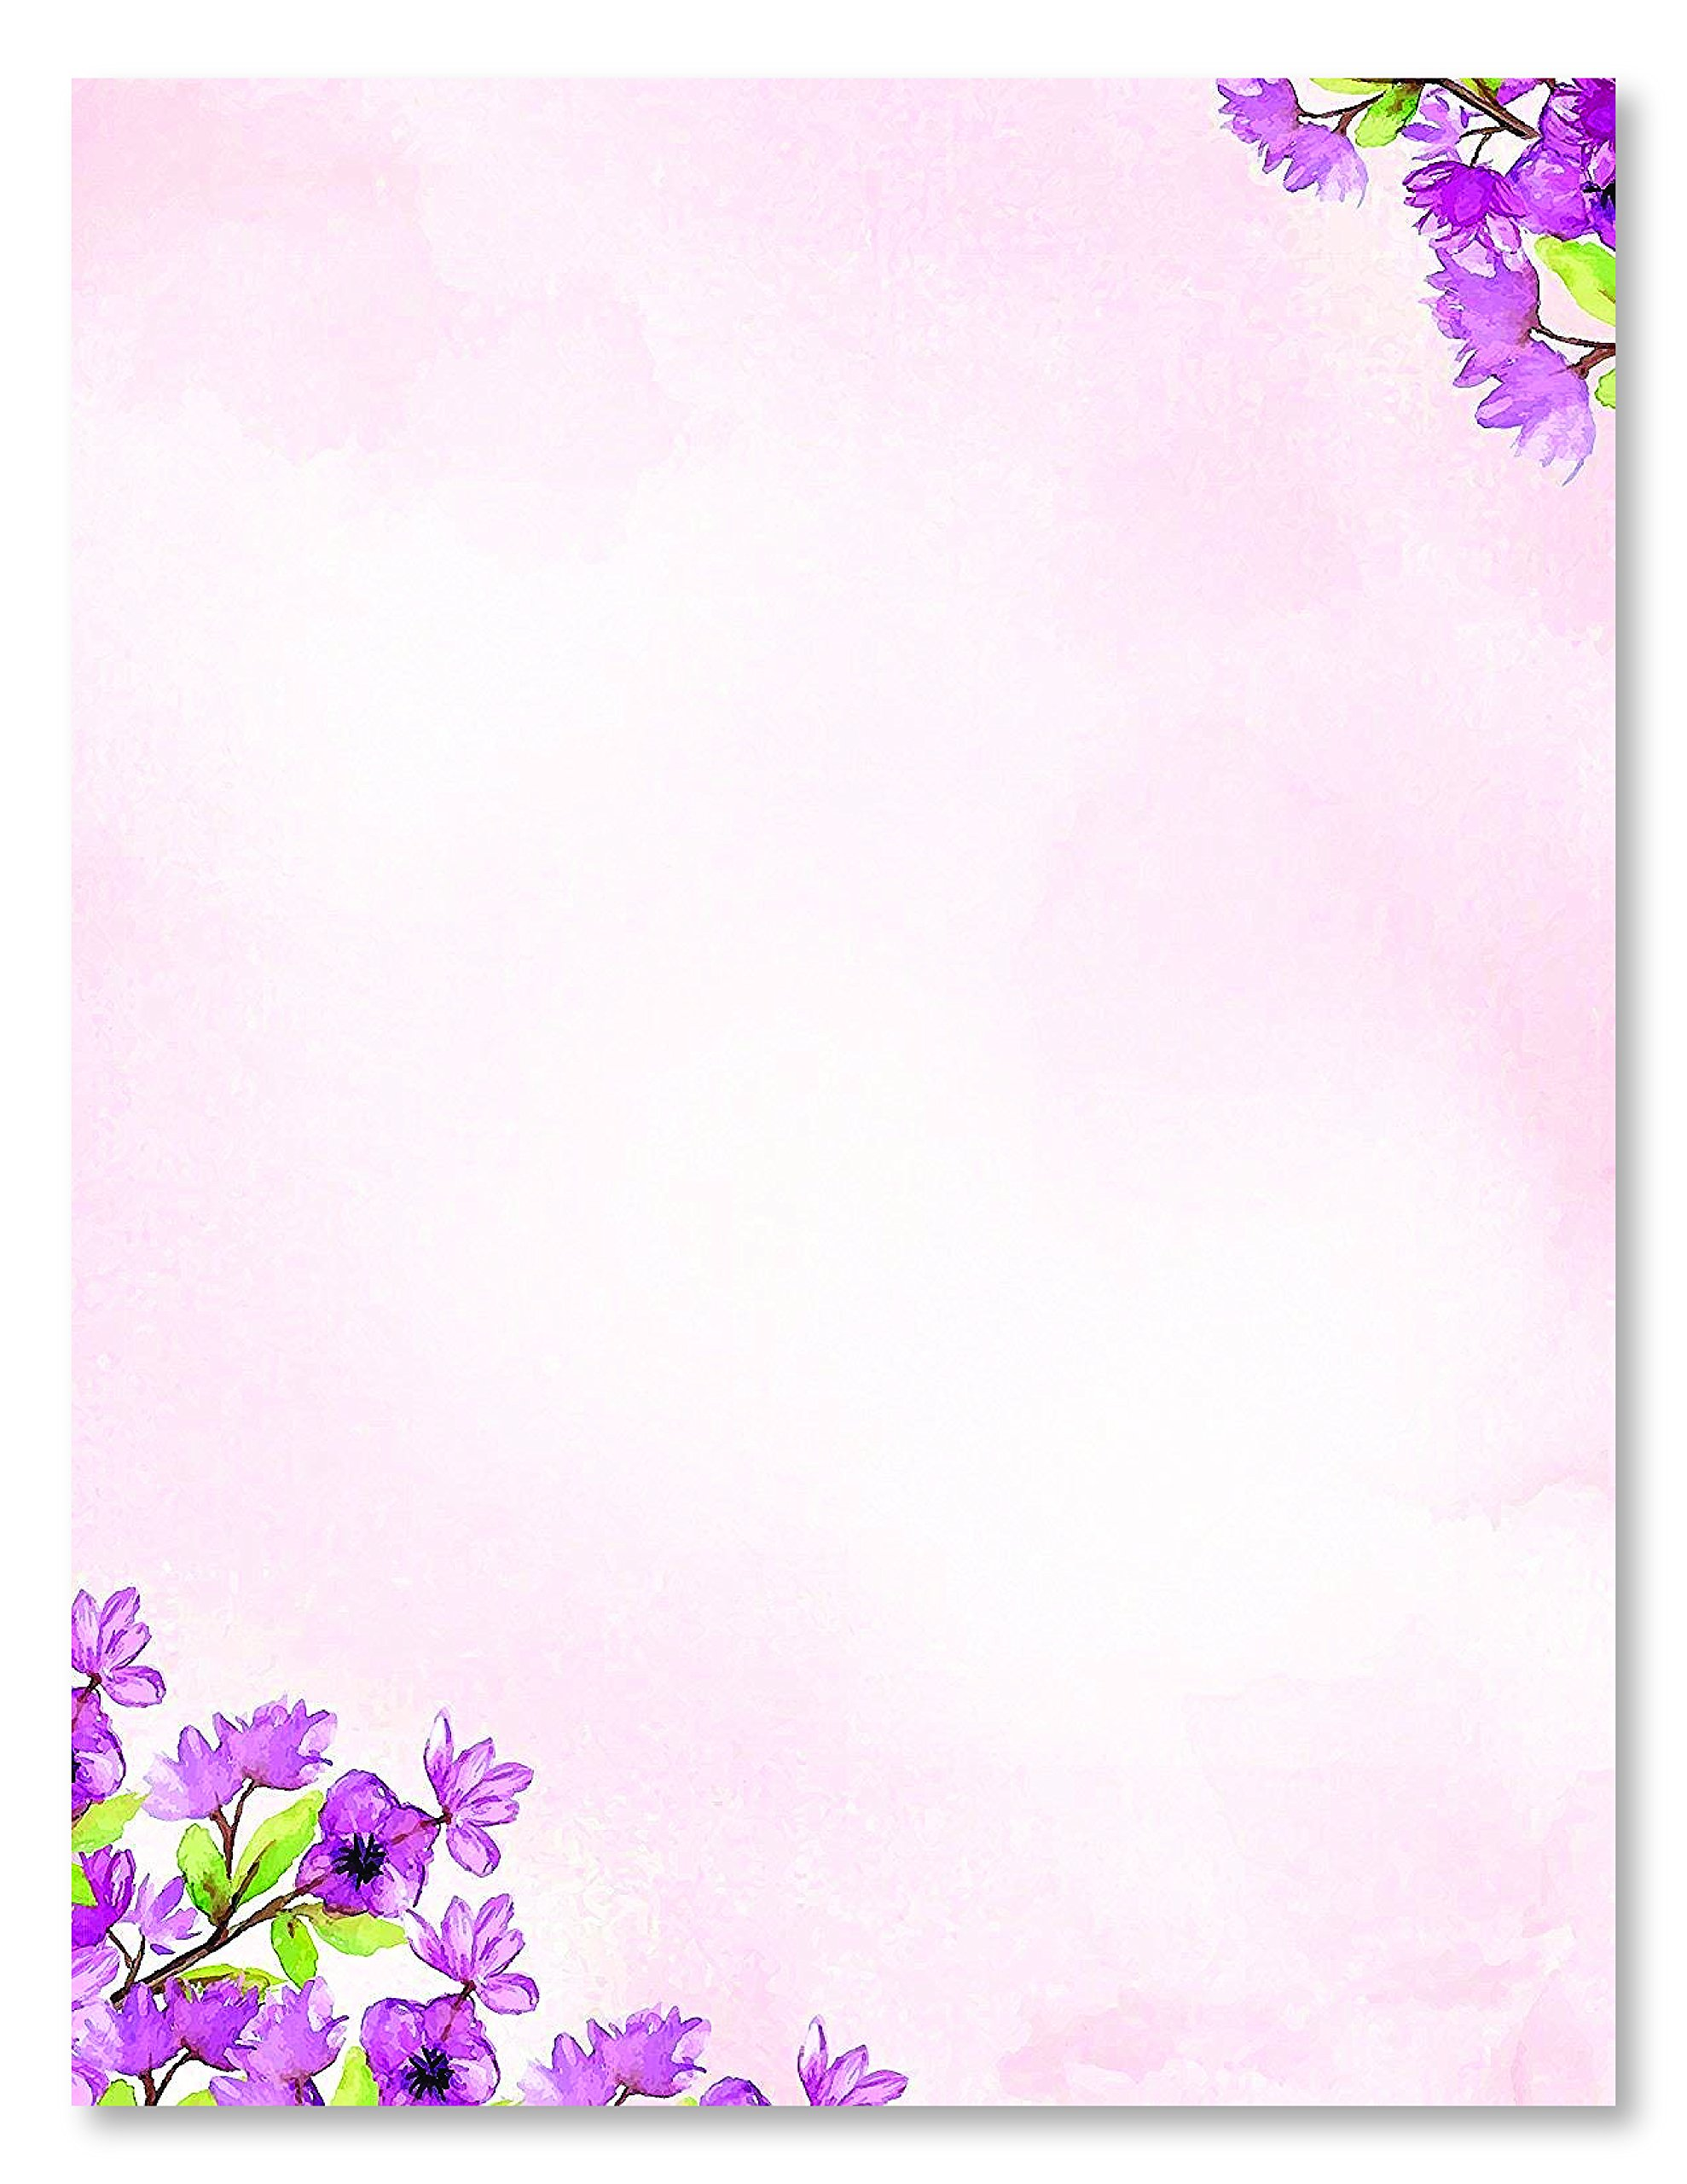 100 Stationery Writing Paper, with Cute Floral Designs Perfect for Notes or Letter Writing - Violets